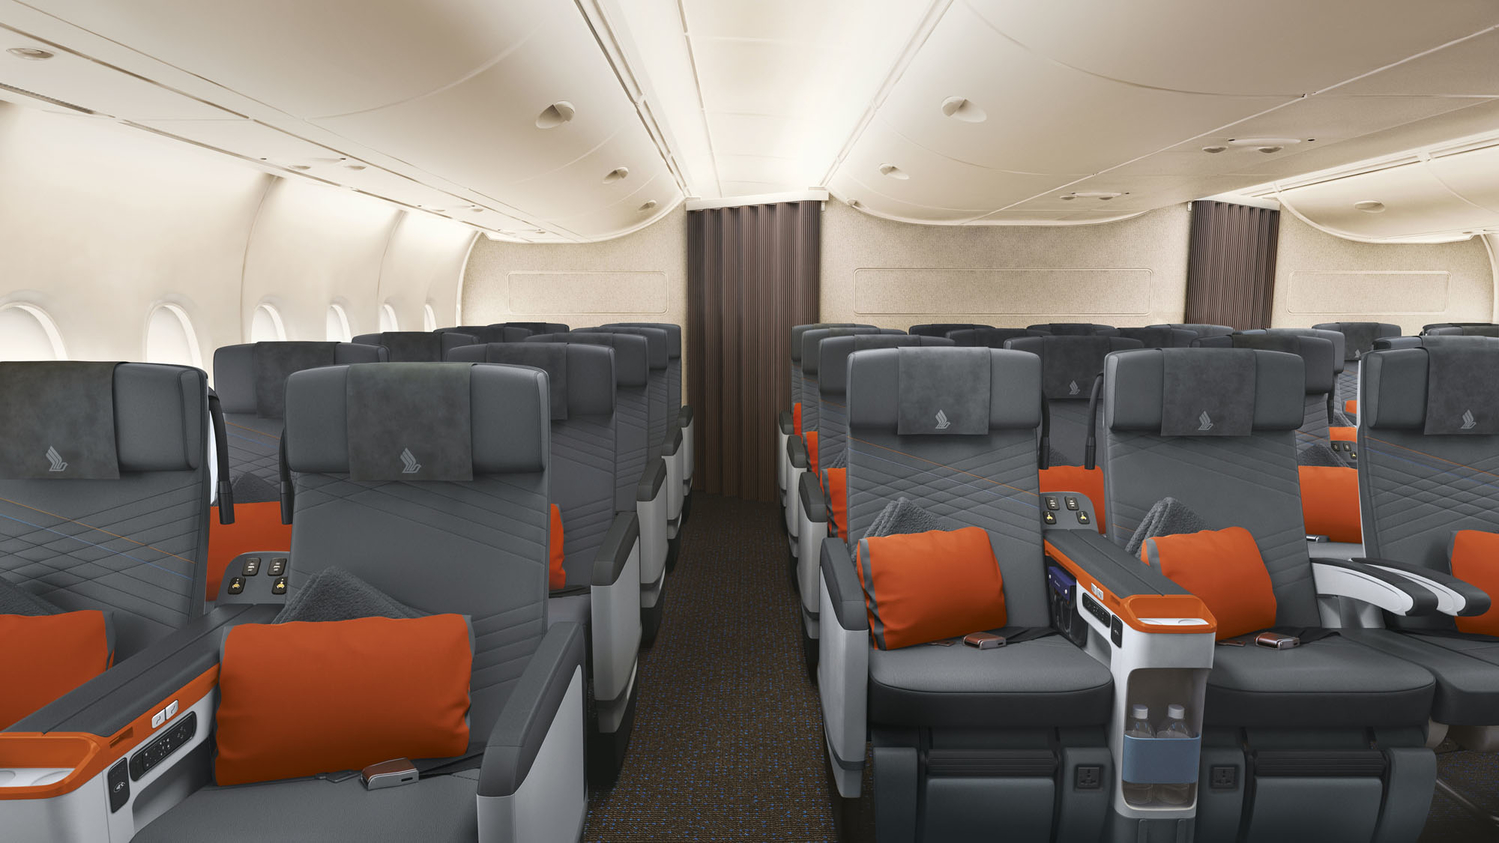 Premium Economy has a 2-4-2 layout, with a 19.5 inch wide seat plus an arm rest.